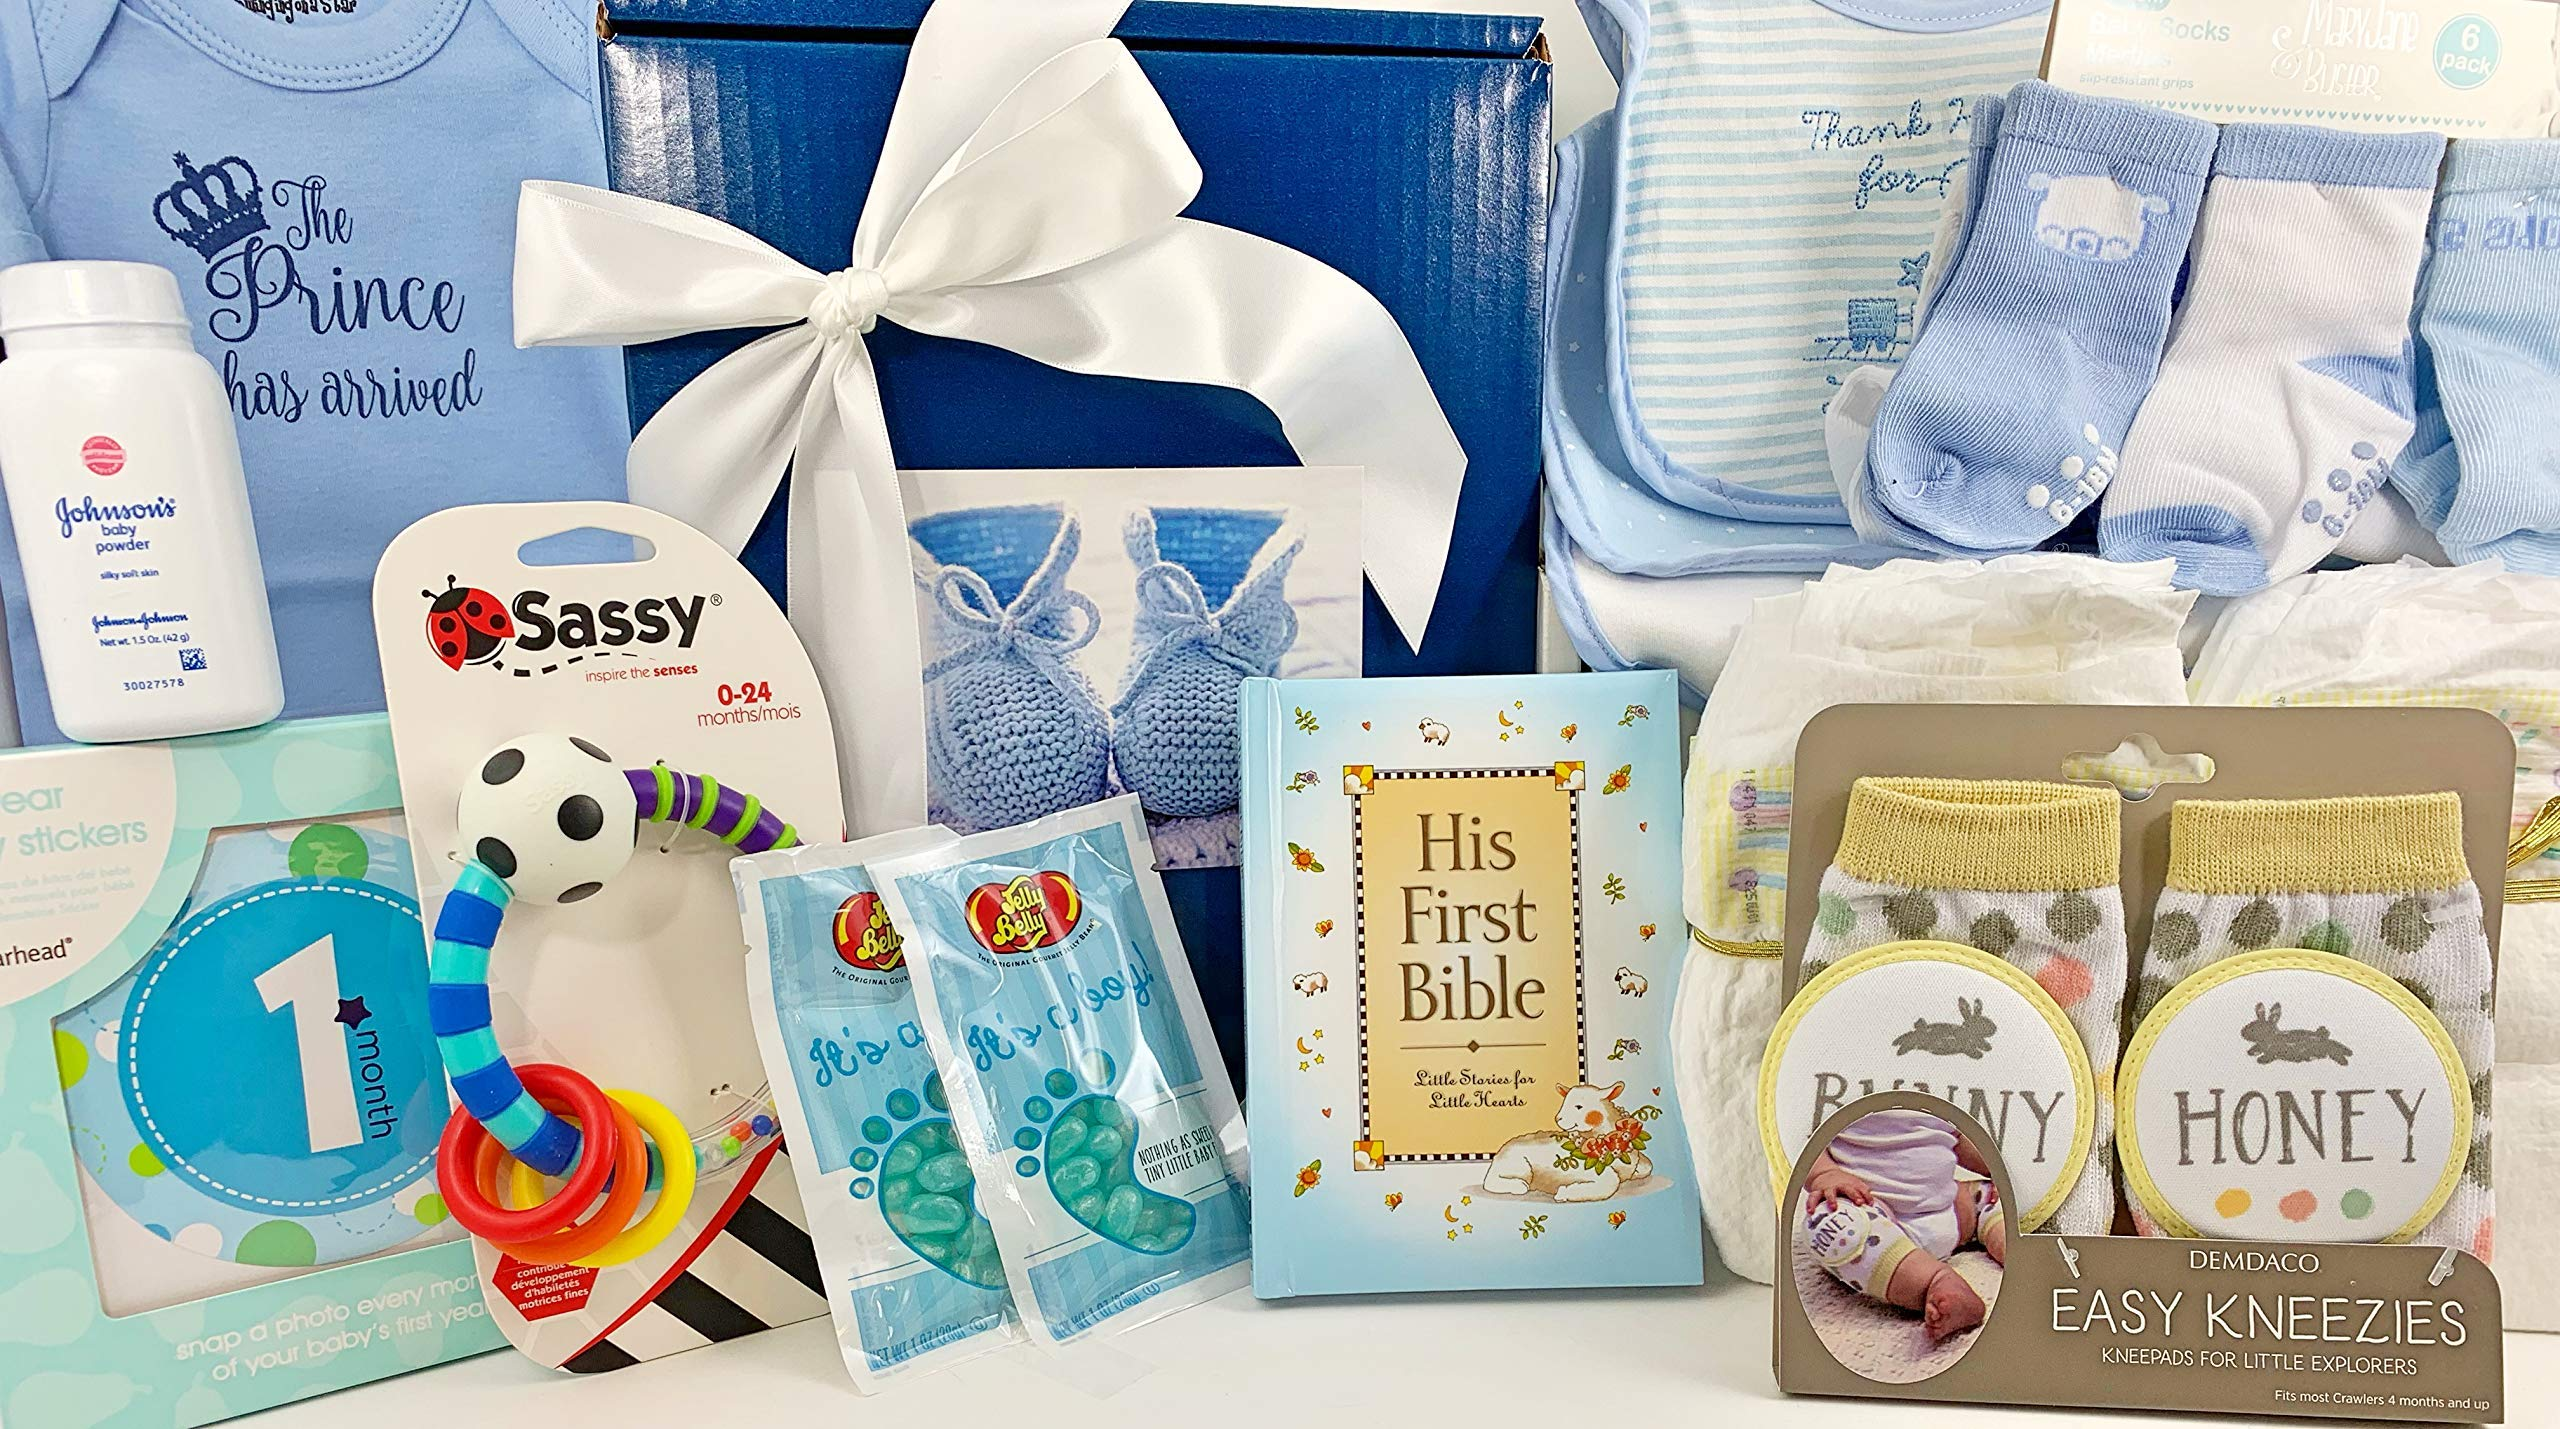 Baby Boy Gift Set Box Basket - 19 Items for the Newborn Bundle of Joy - Send Congratulations to the New Parents! Great for a Baby Shower Gift!